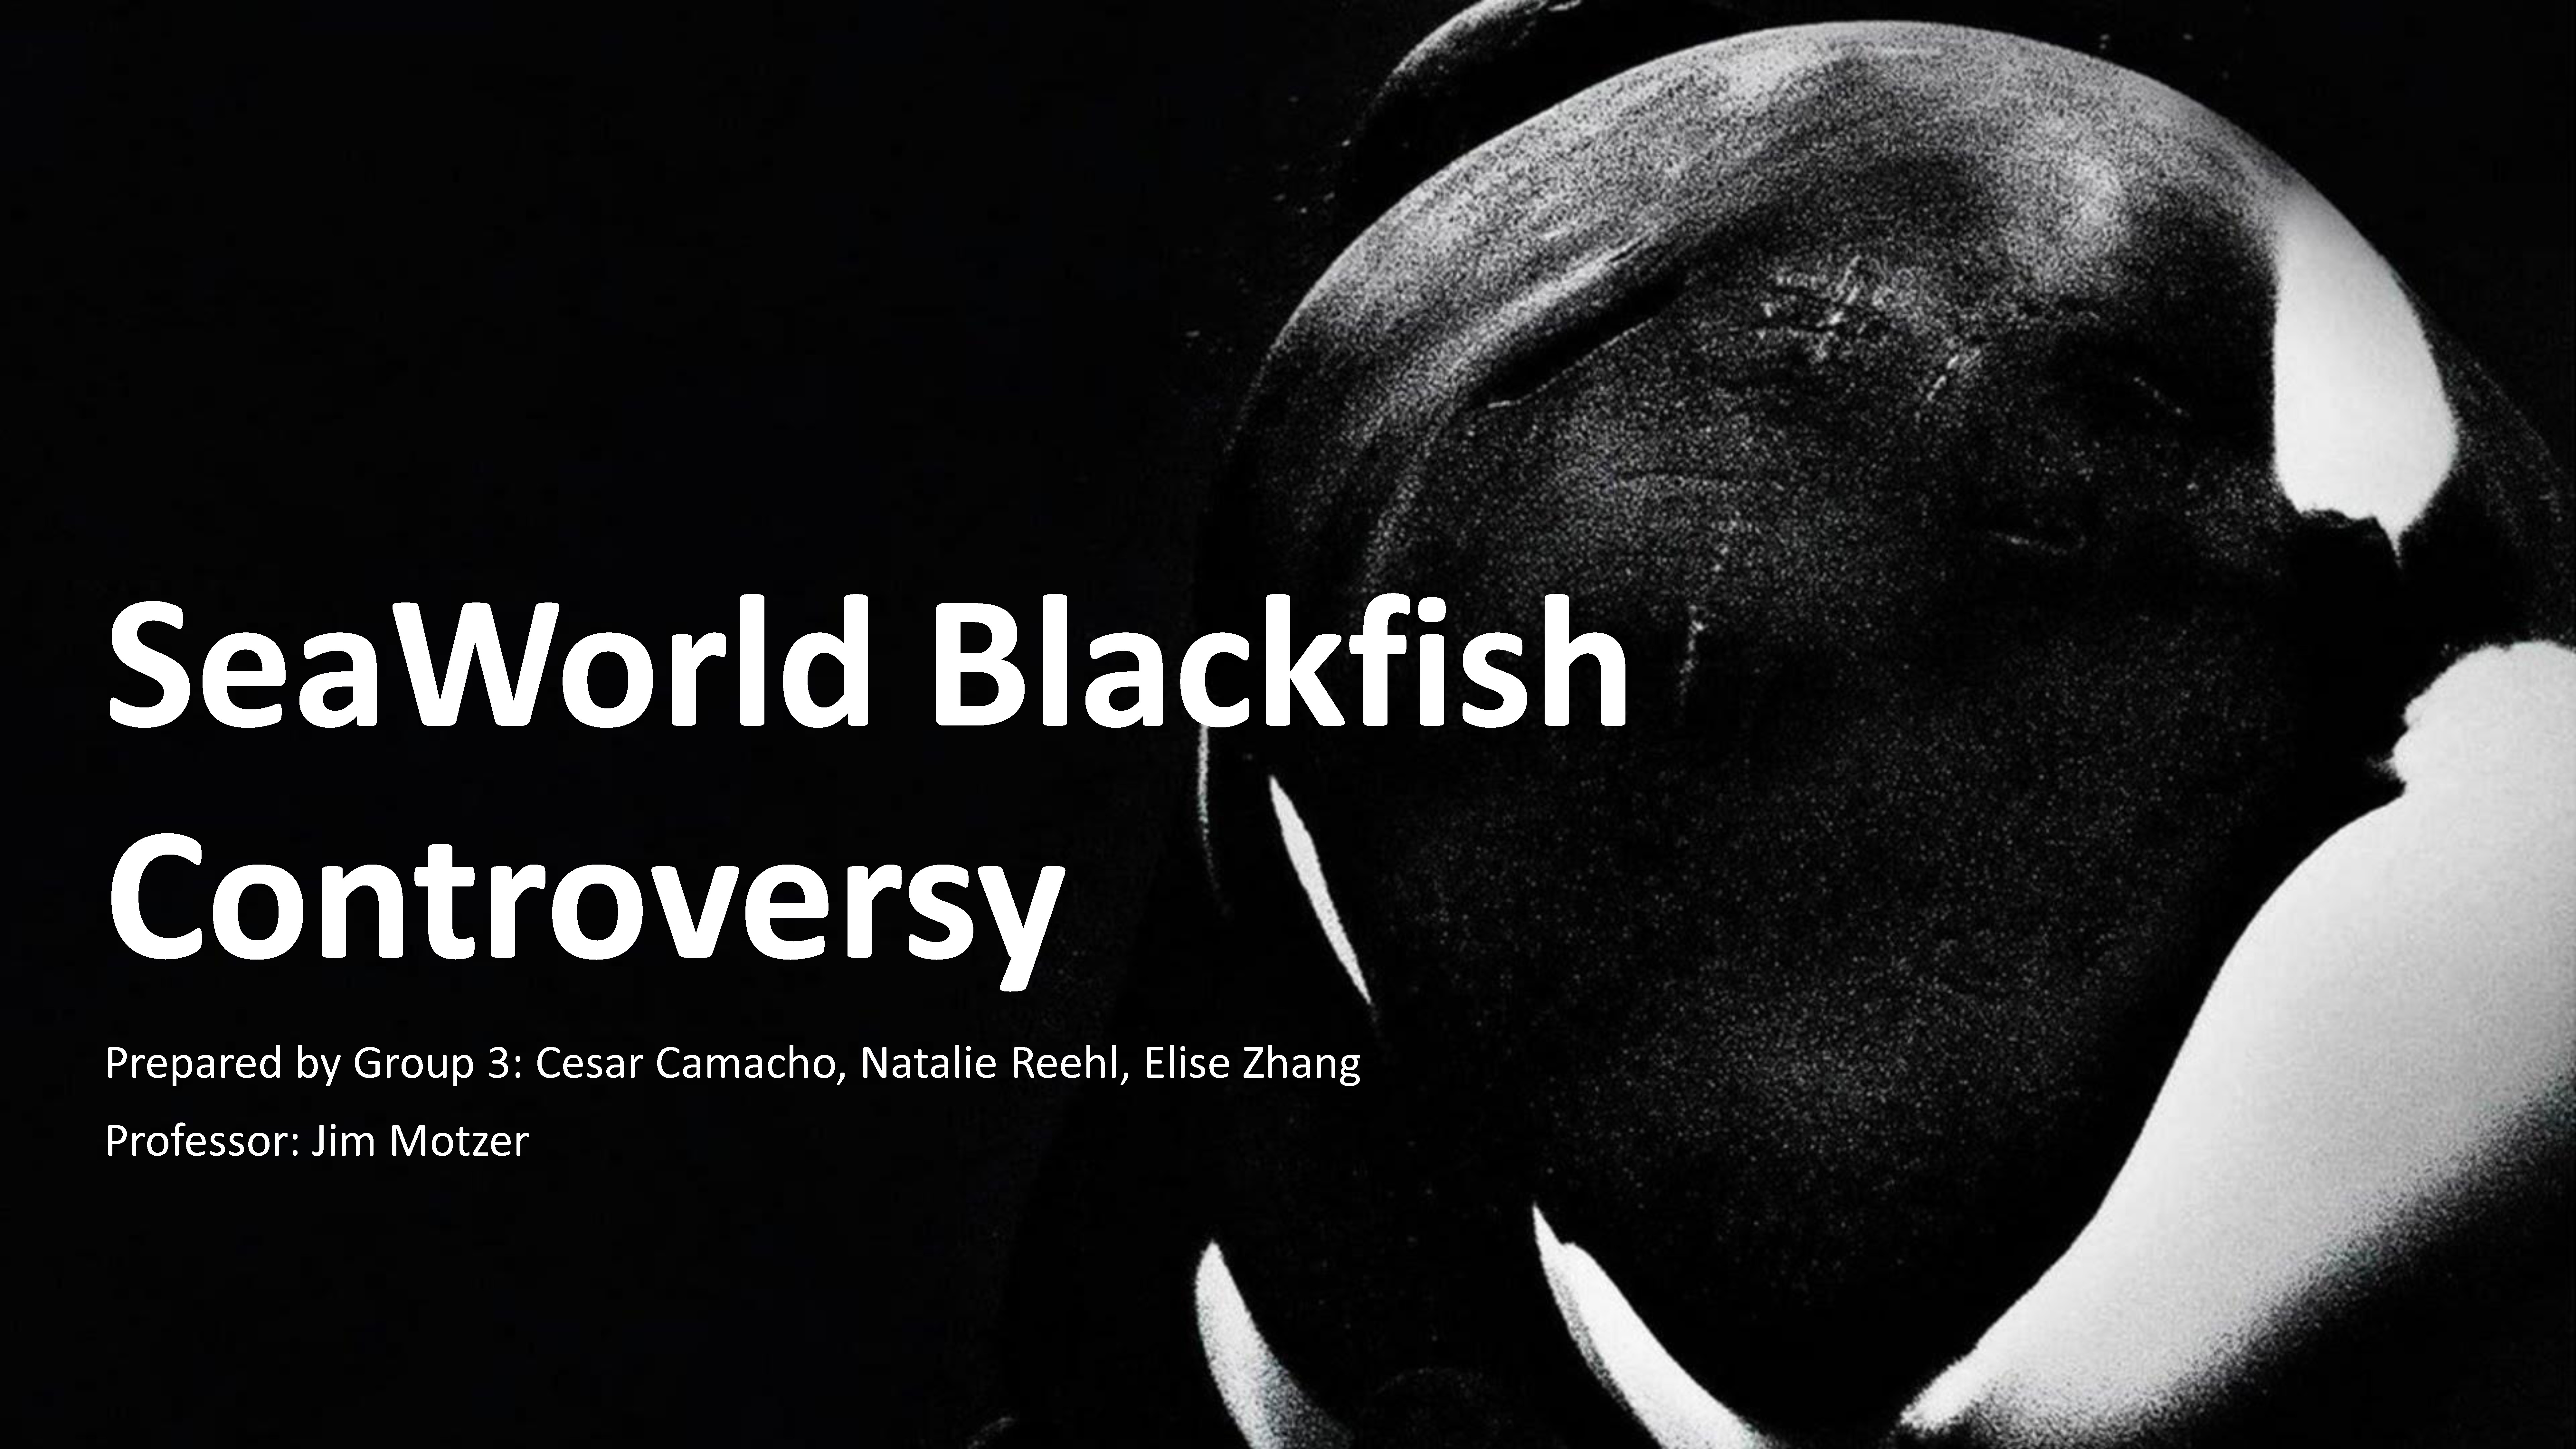 Group 3 - Seaworld Blackfish Controversy